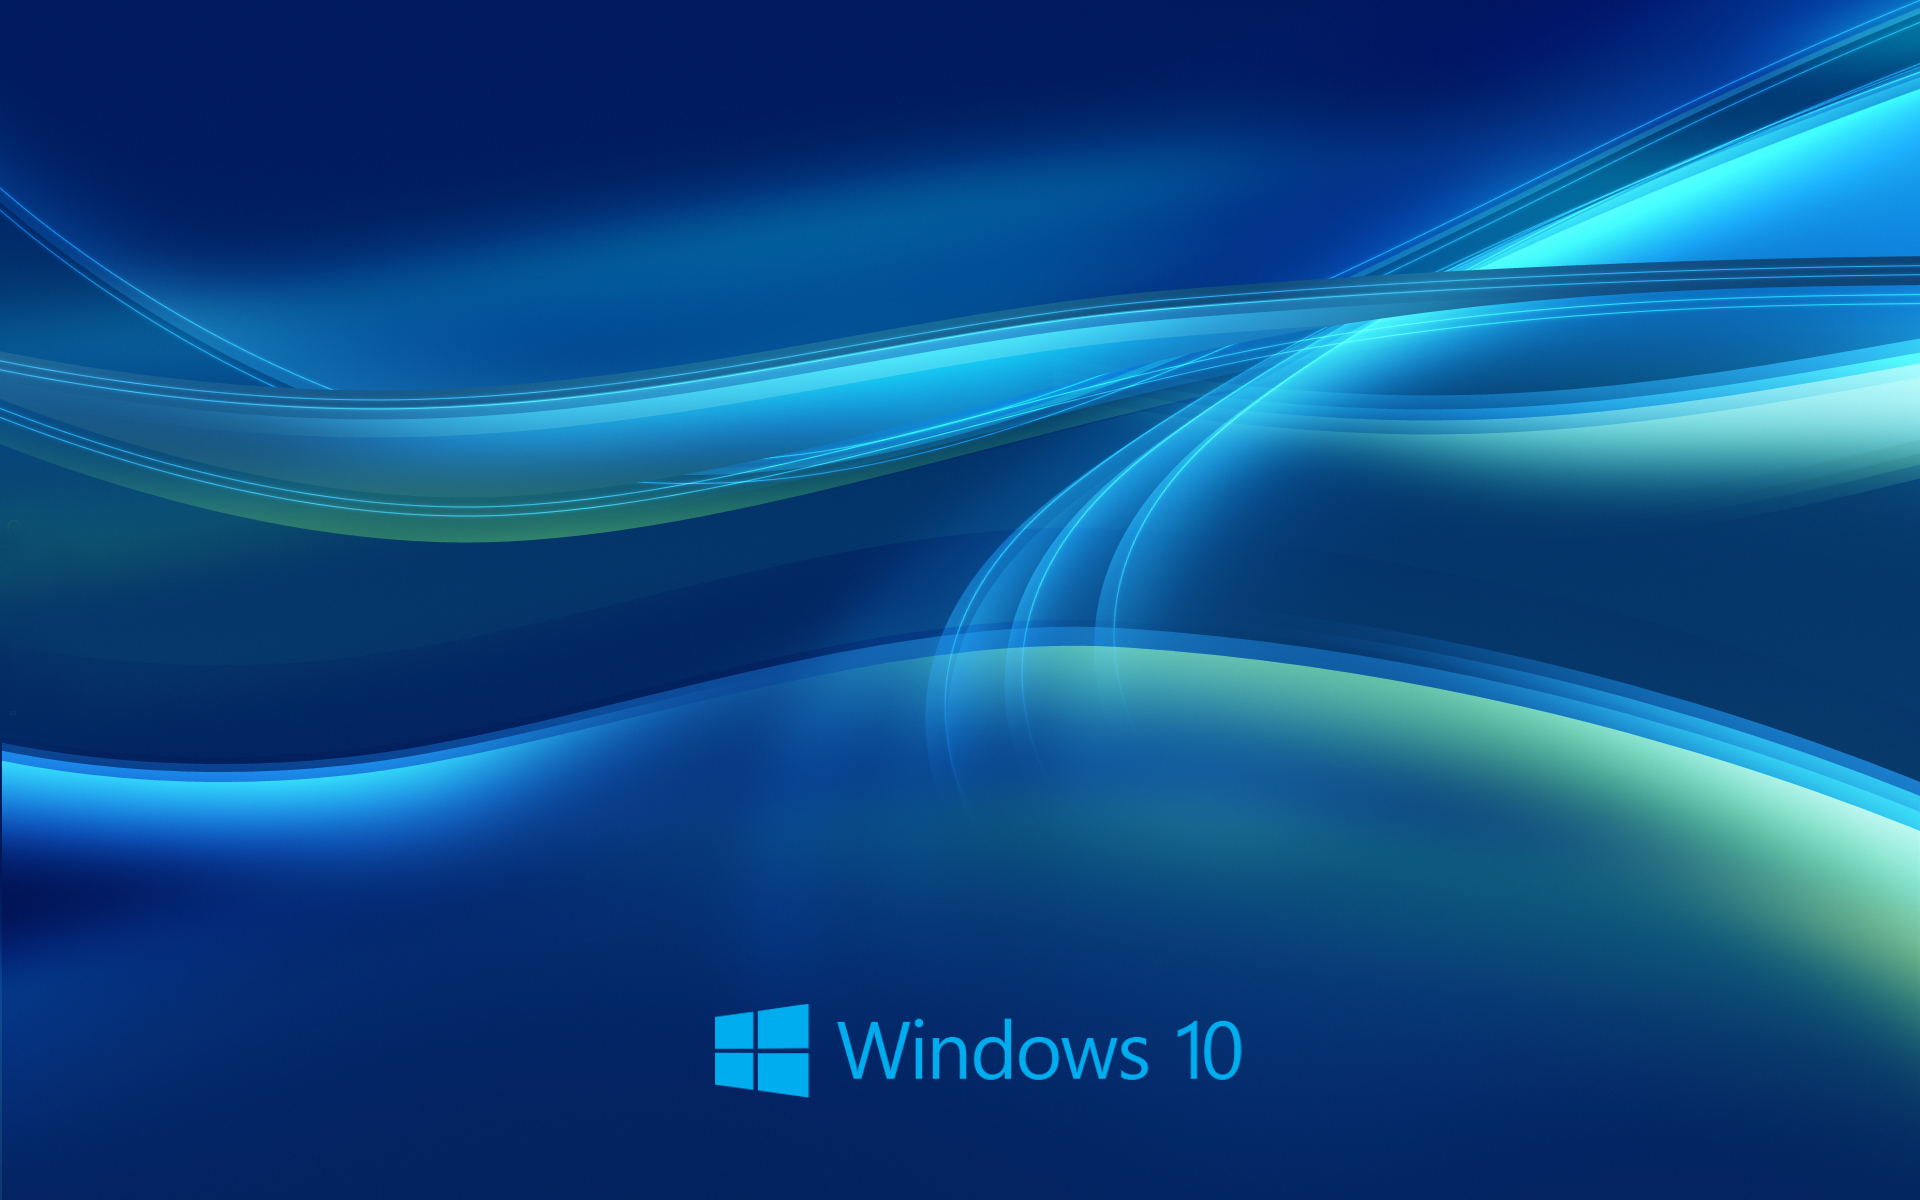 Windows 10 Logo Wallpaper and Theme Pack | All for Windows 10 Free